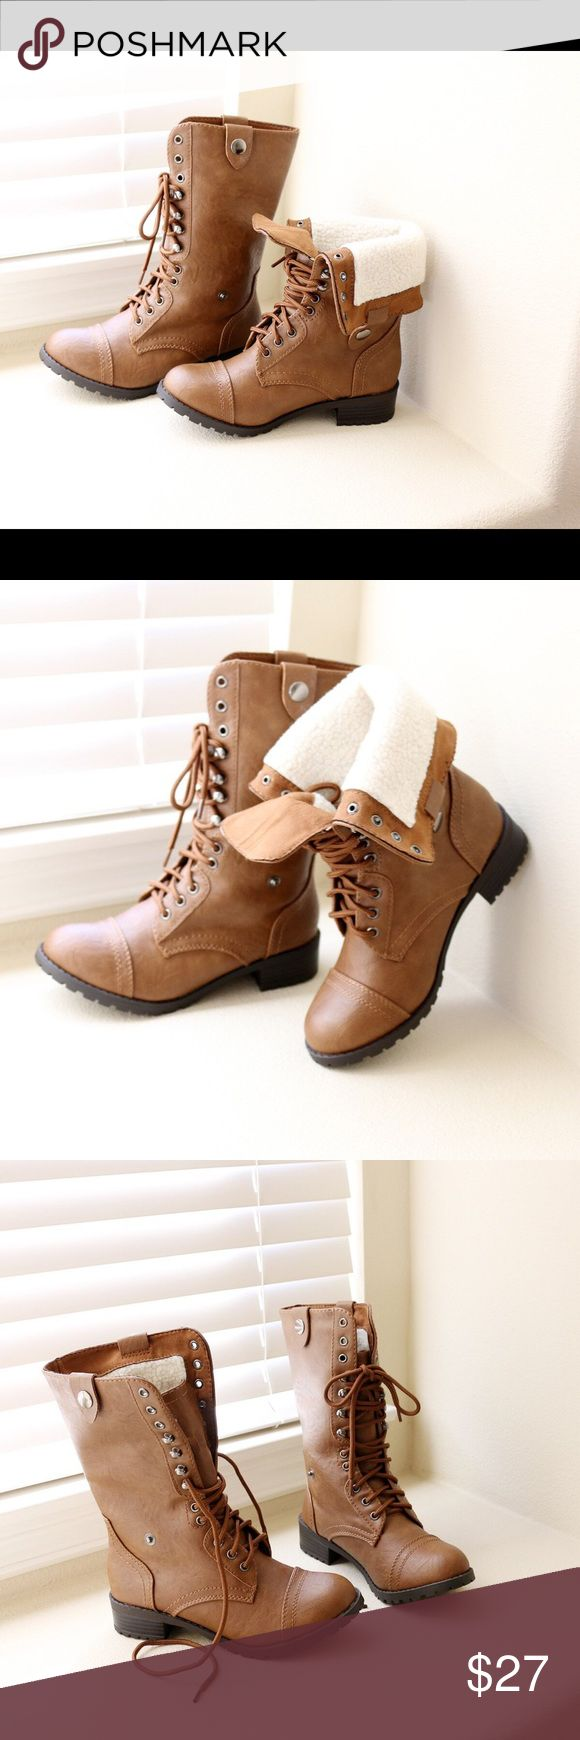 """oral-tan-combat boots Style                : Mid Calf Boots Heel Height     : 1 1/4"""" Color               : Tan Condition        : New in Box Main Material   : Man-made Material  (Faux leather) Fit                     : Slightly Small to Size Shaft Height    : About 9 3/4"""" Soda Shoes Combat & Moto Boots"""